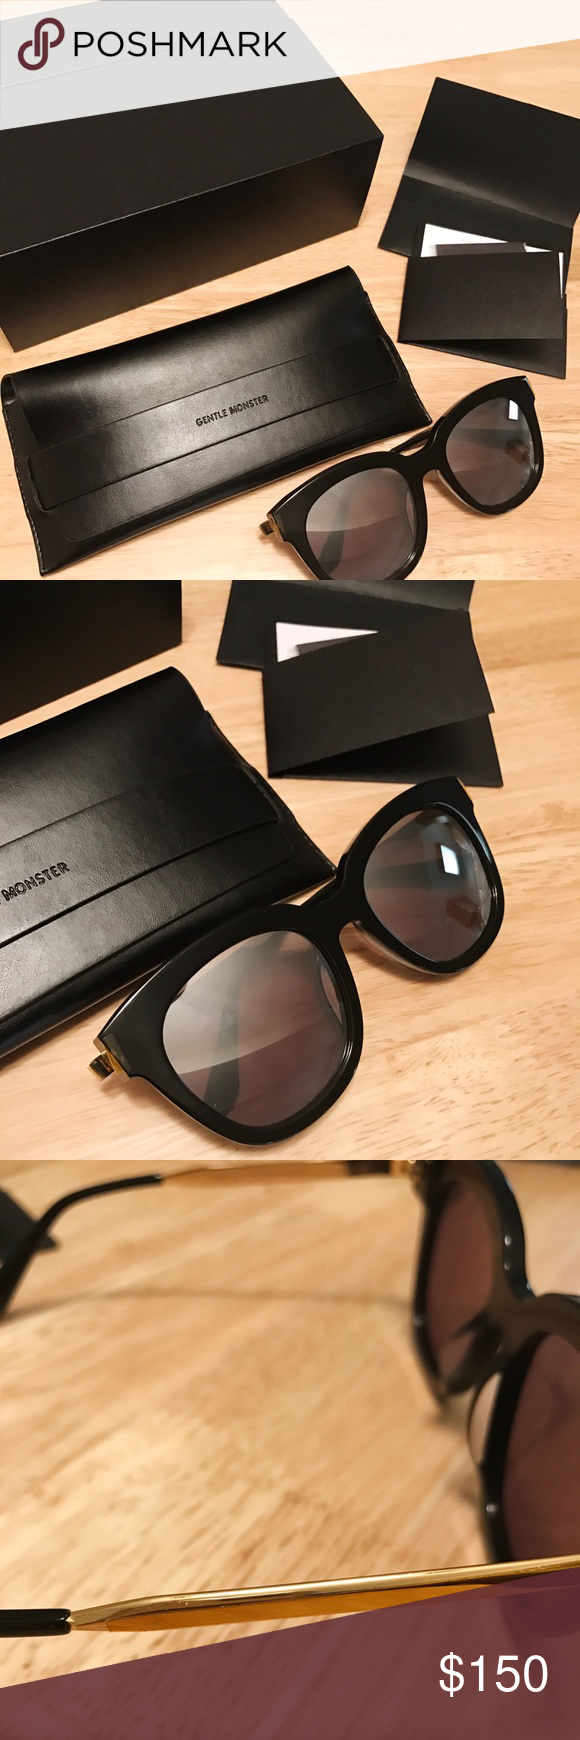 5e29fc958b7 Gentle Monster Absente 01 Gold Reflective Sunnies NEW IN BOX. I was gifted  this for